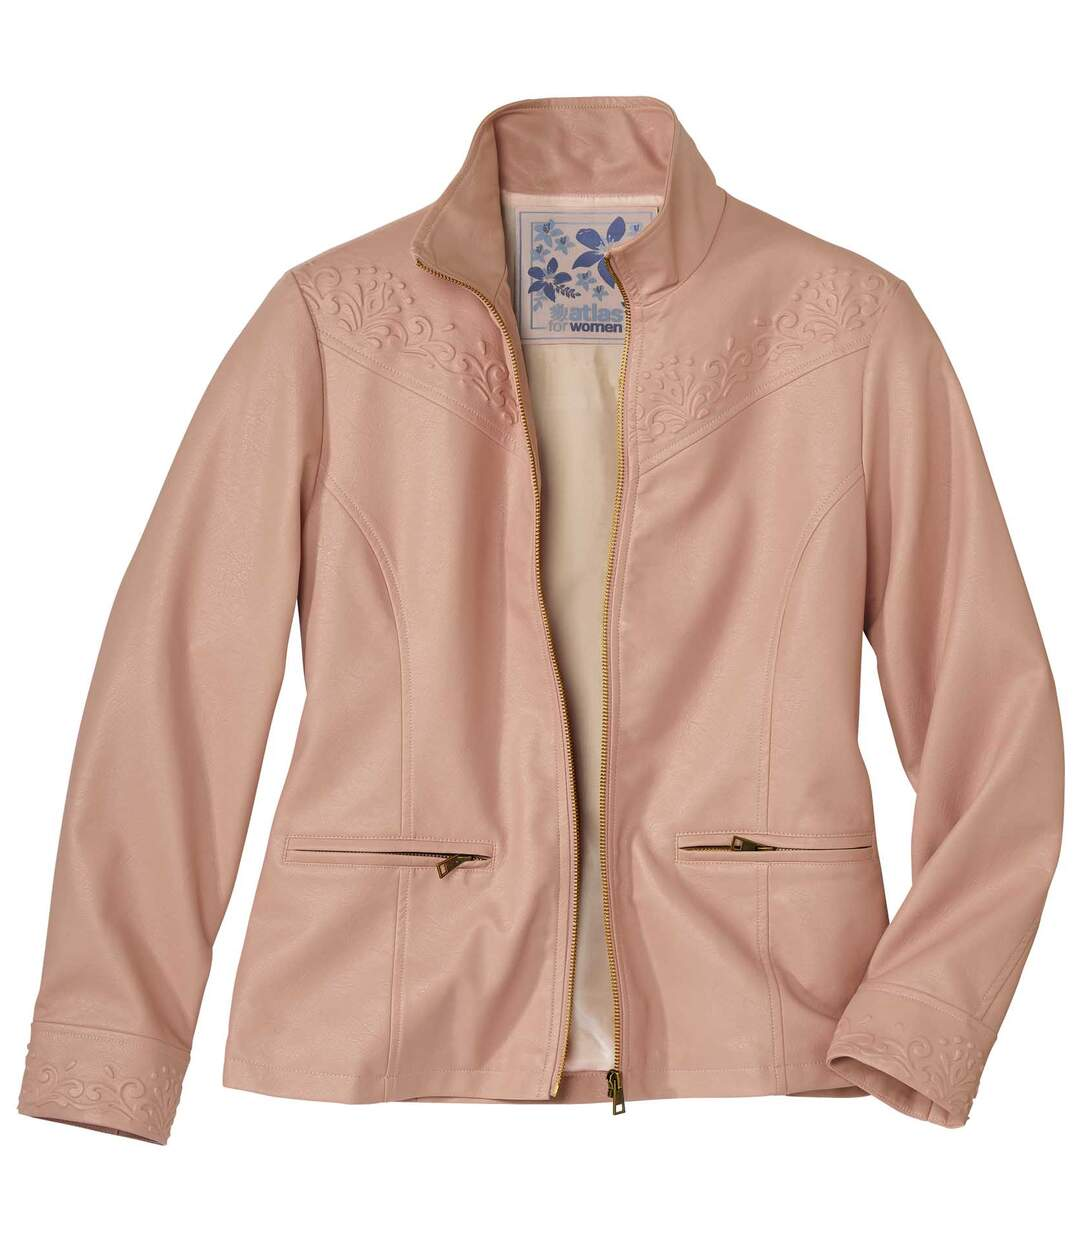 Women's Pink Faux-Leather Jacket